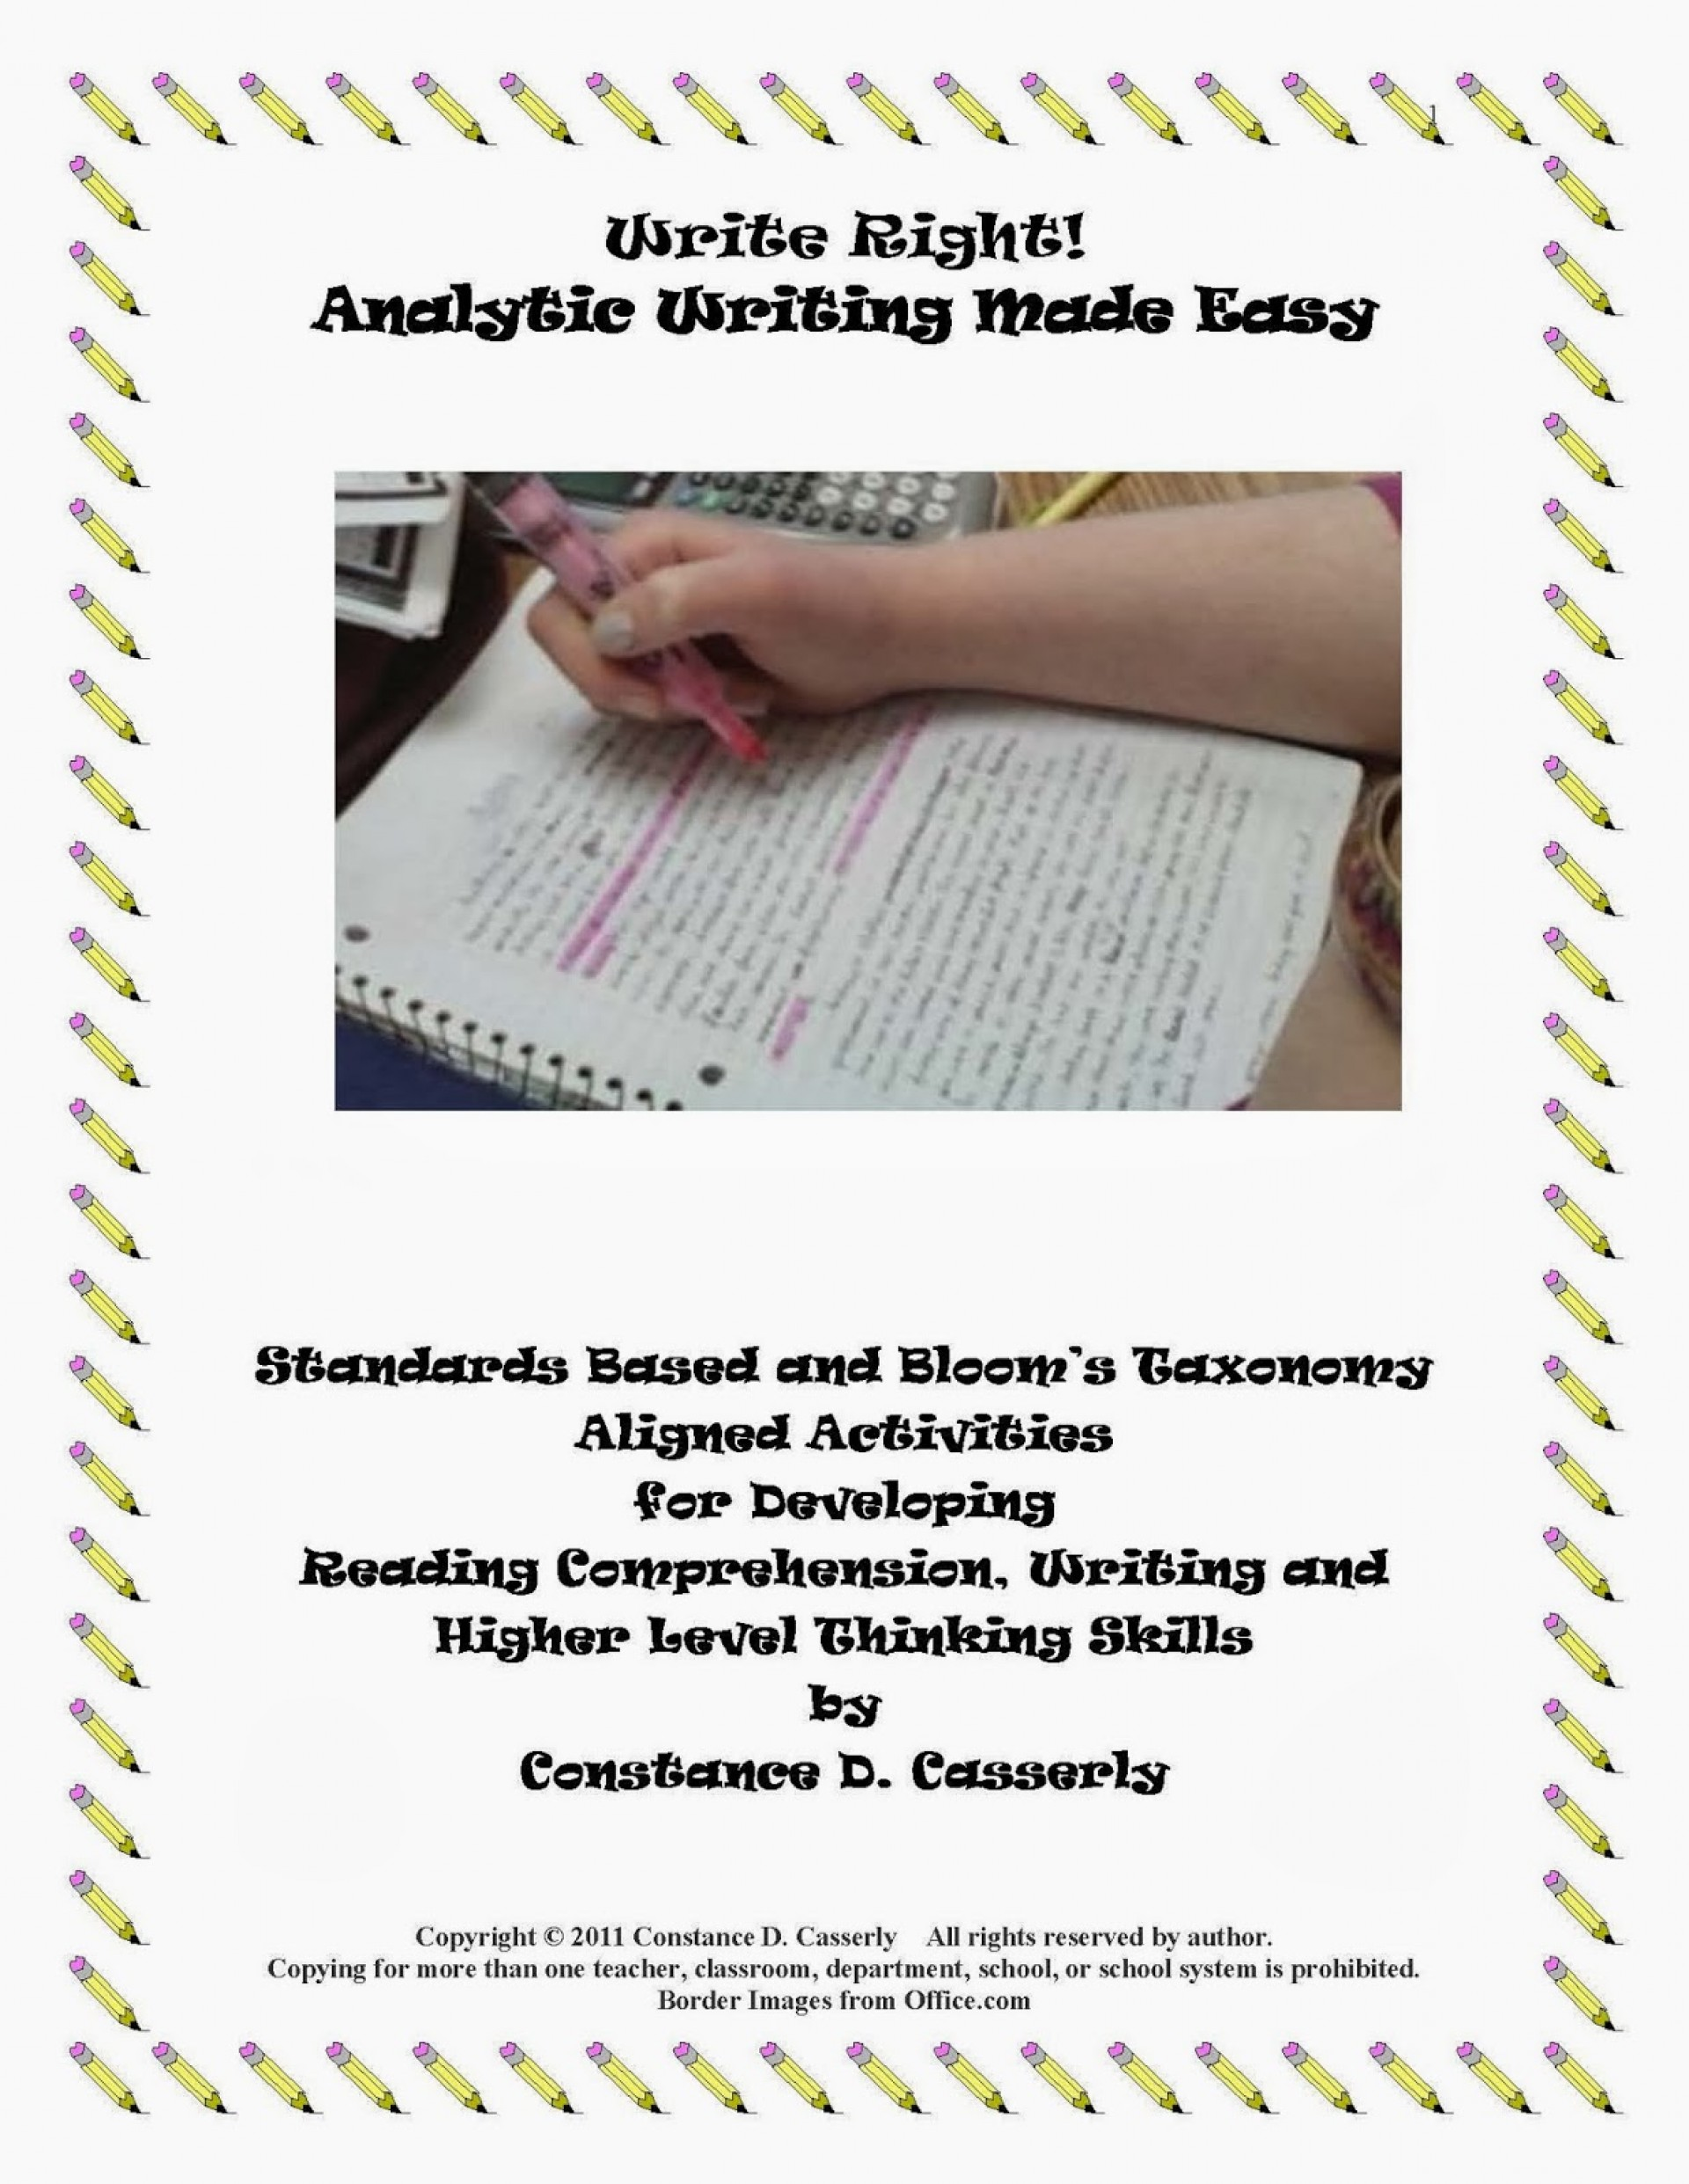 015 Essay Example Kincaid Write Right Analytic Writing Made Easyrev Page Girl By Jamaica Pdf On Research Analysis Marvelous 1920